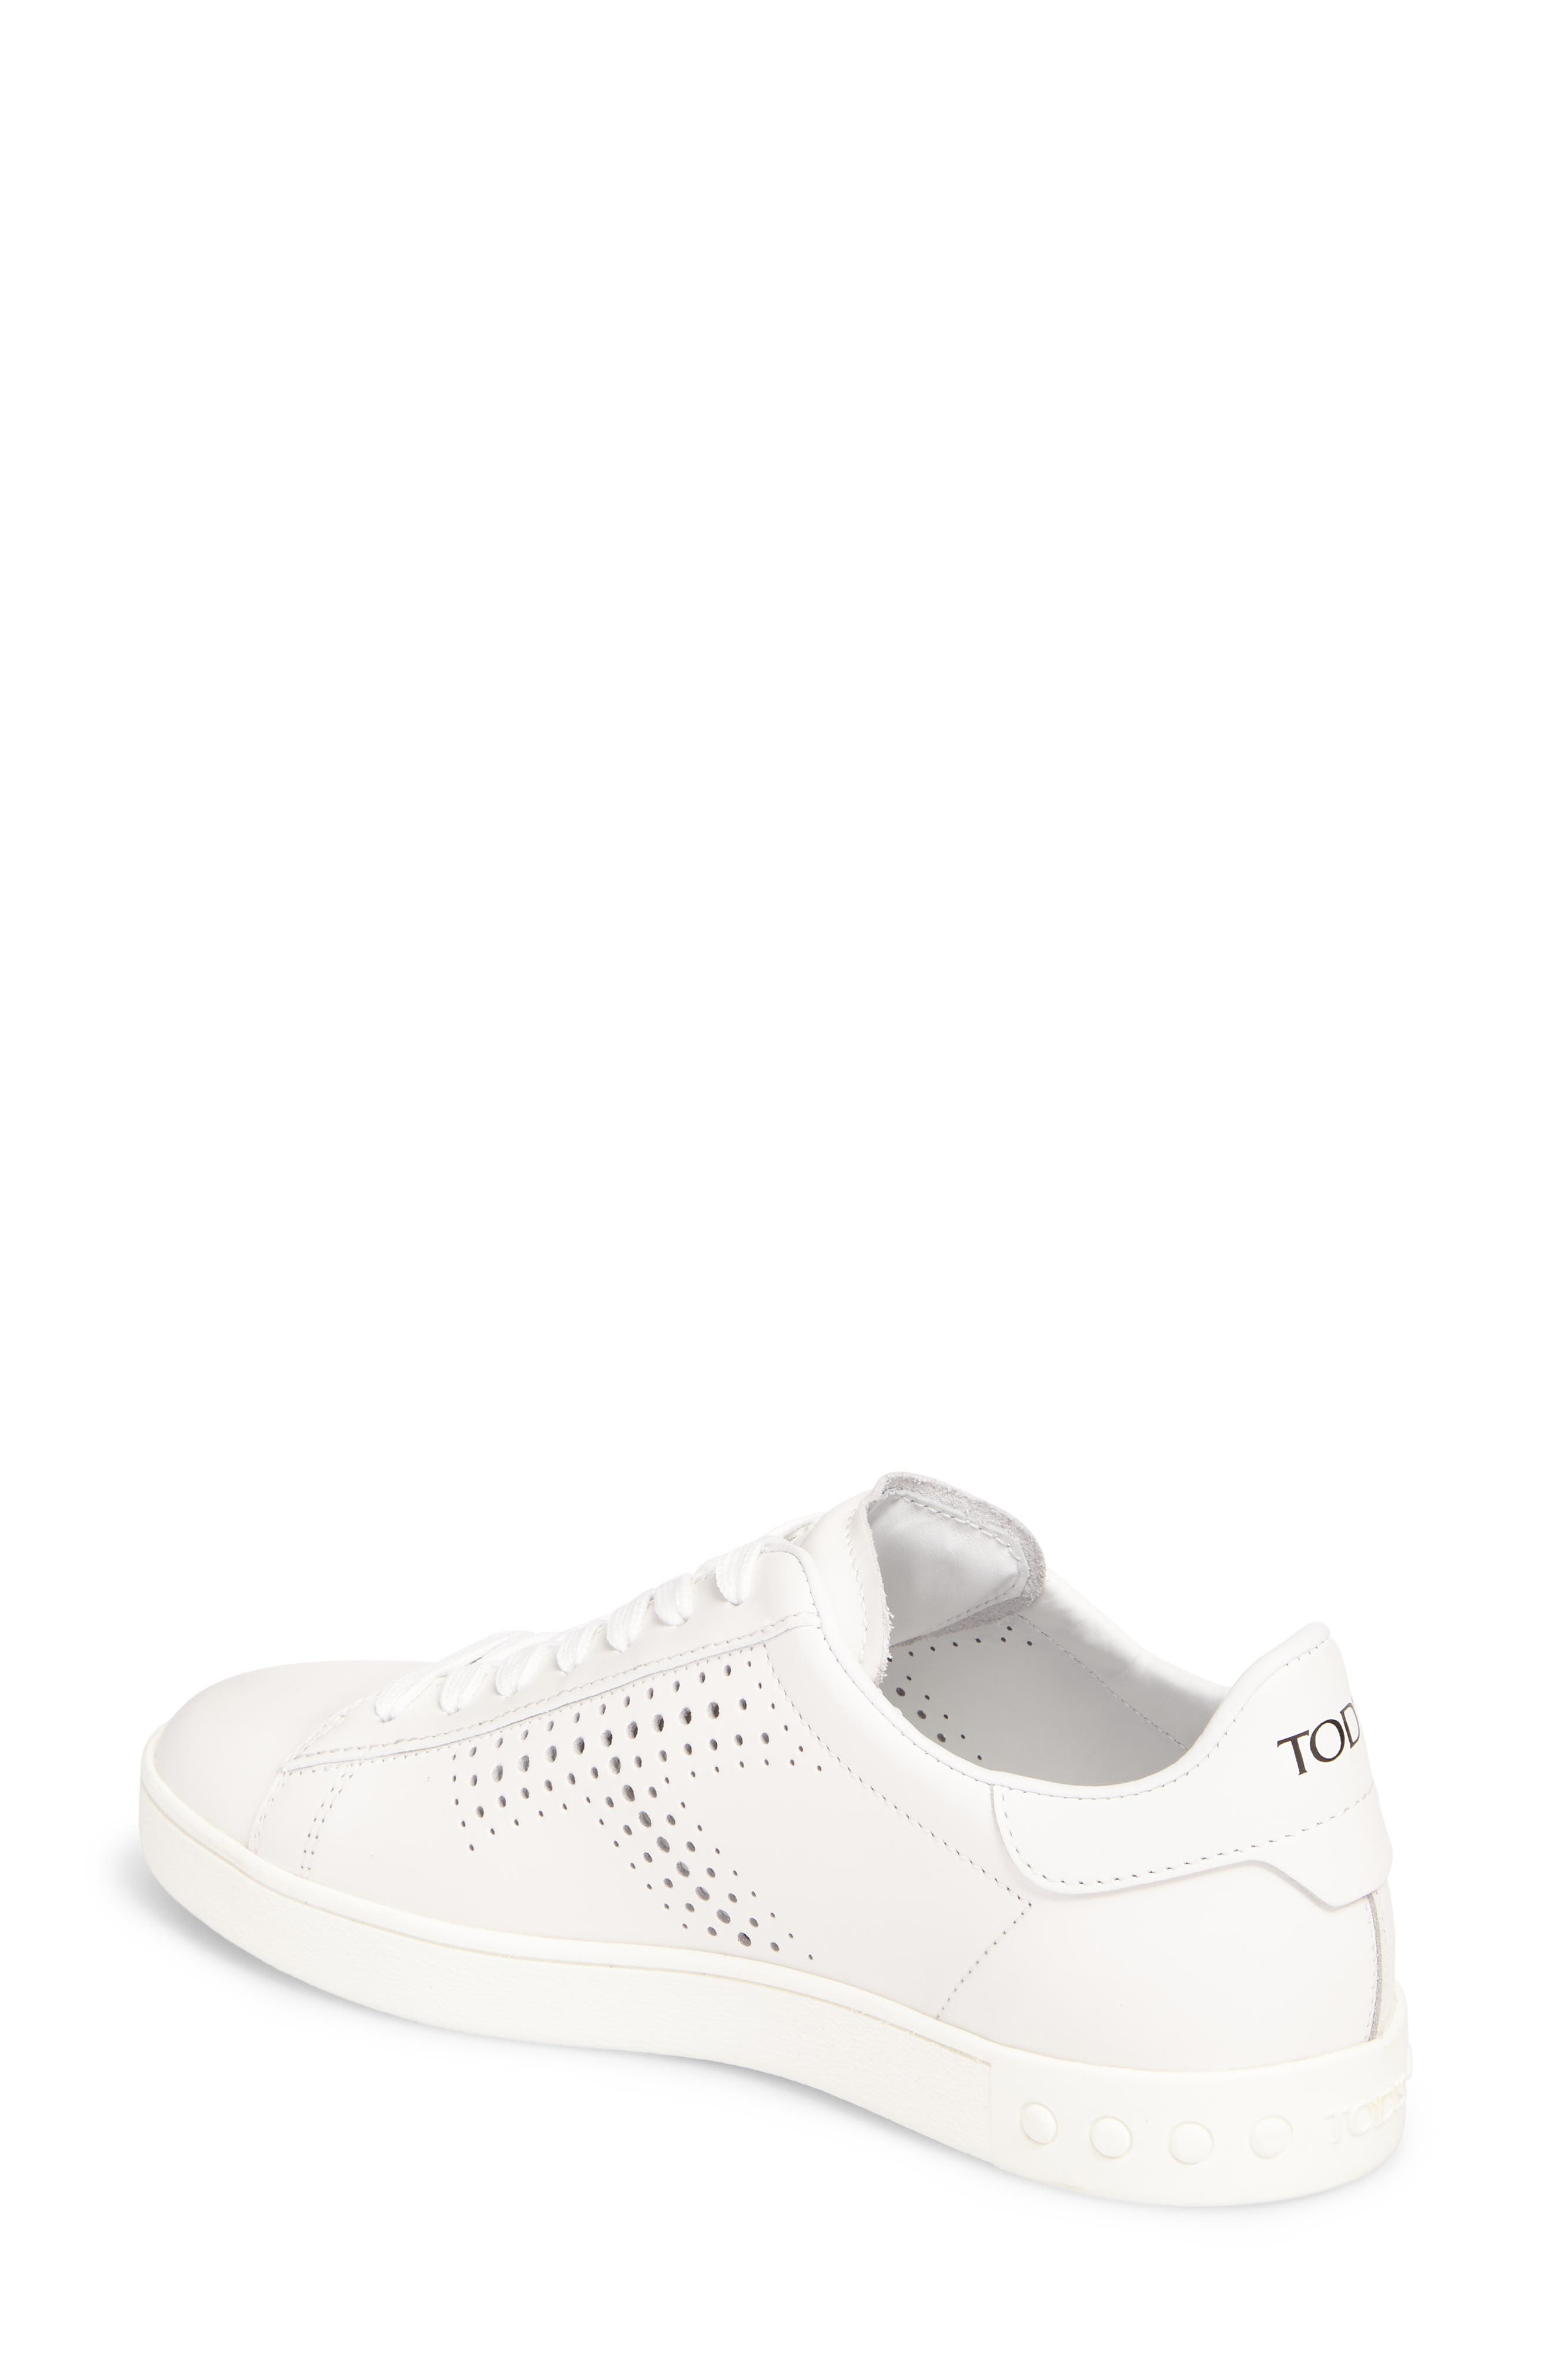 Perforated T Sneaker,                             Alternate thumbnail 2, color,                             White